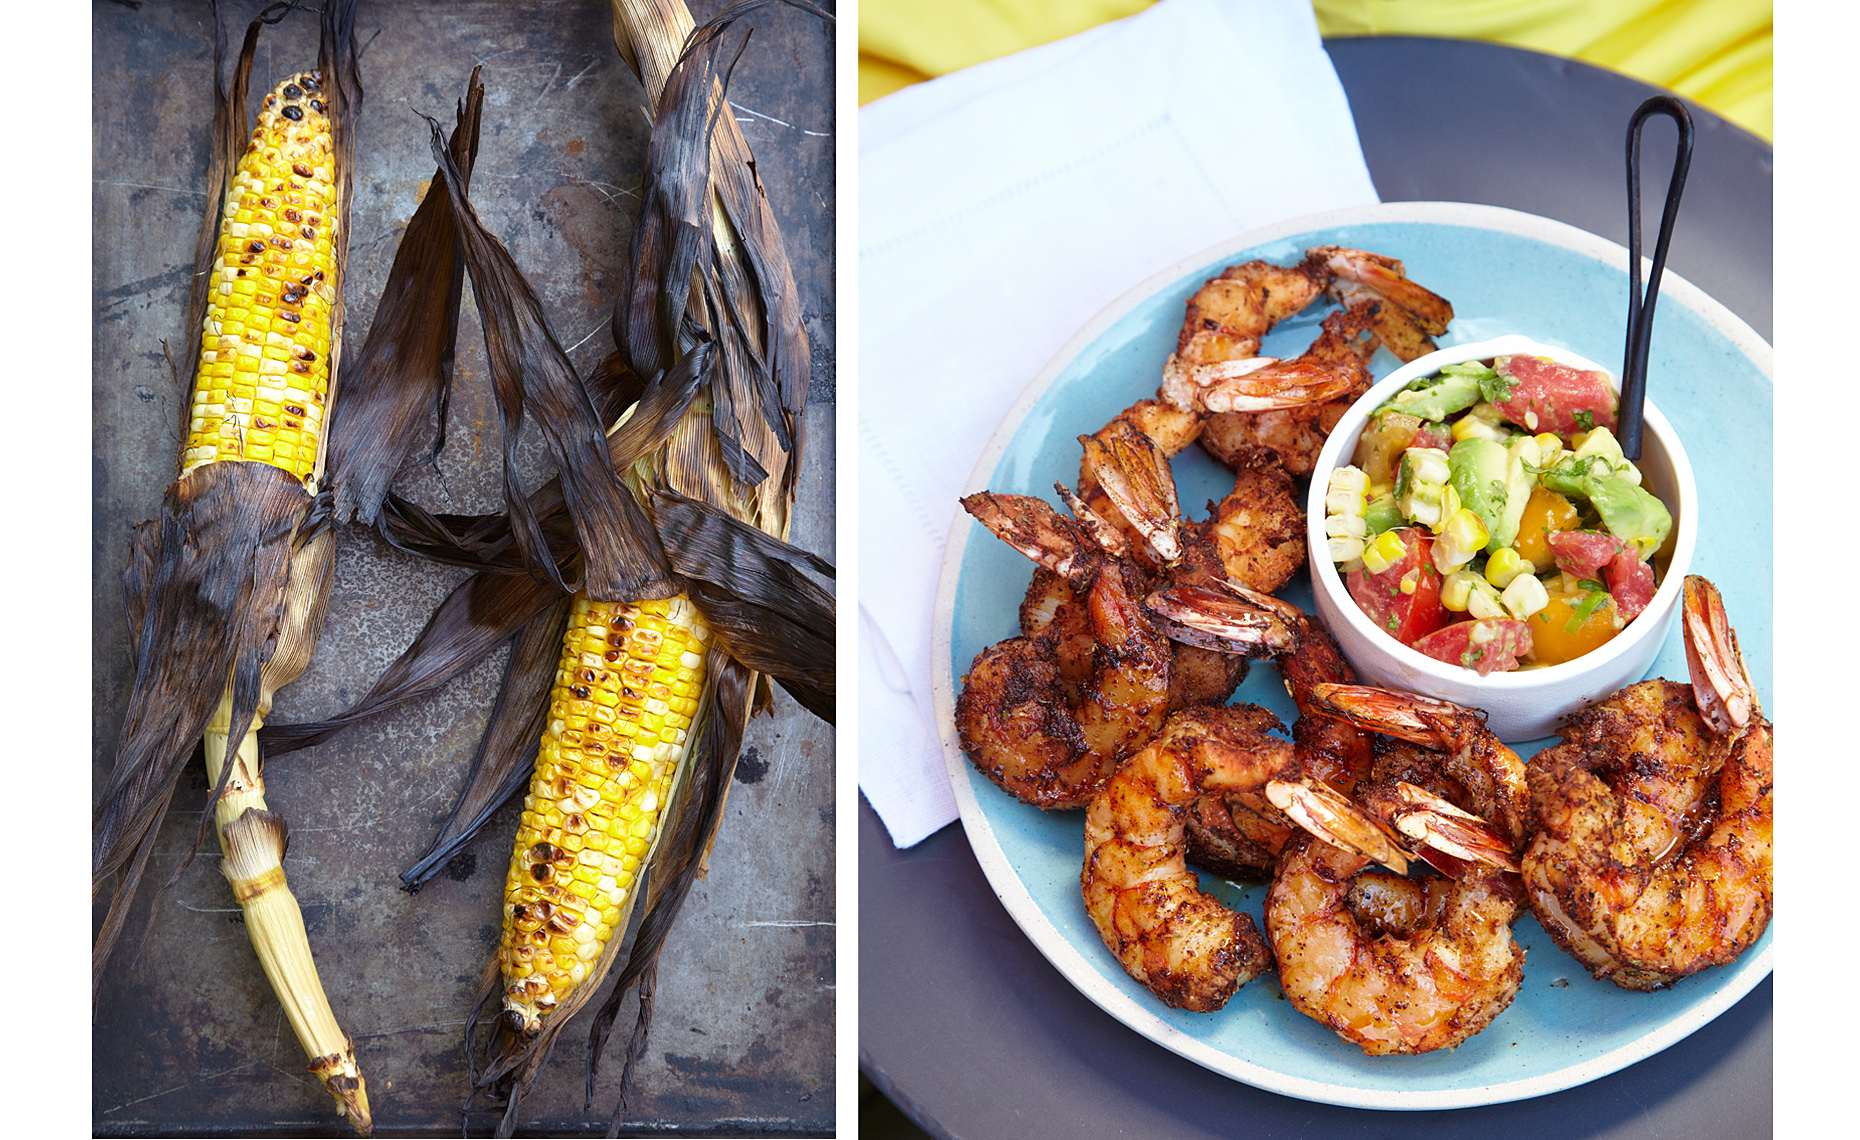 TS_Corn_grilled_shrimp.jpg